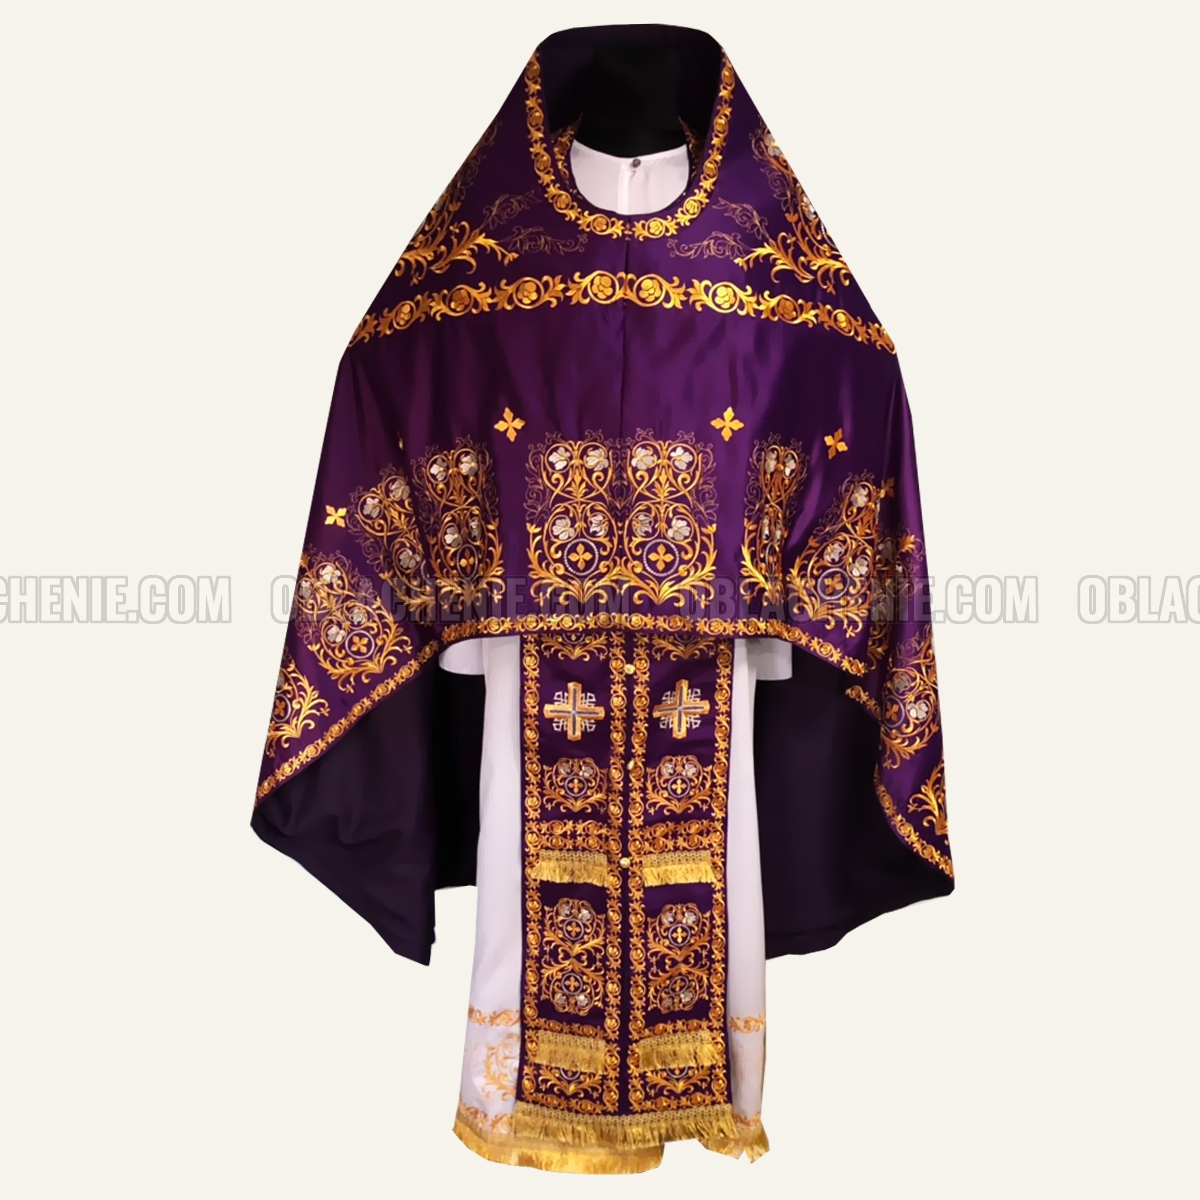 Embroidered priest's vestments 10224